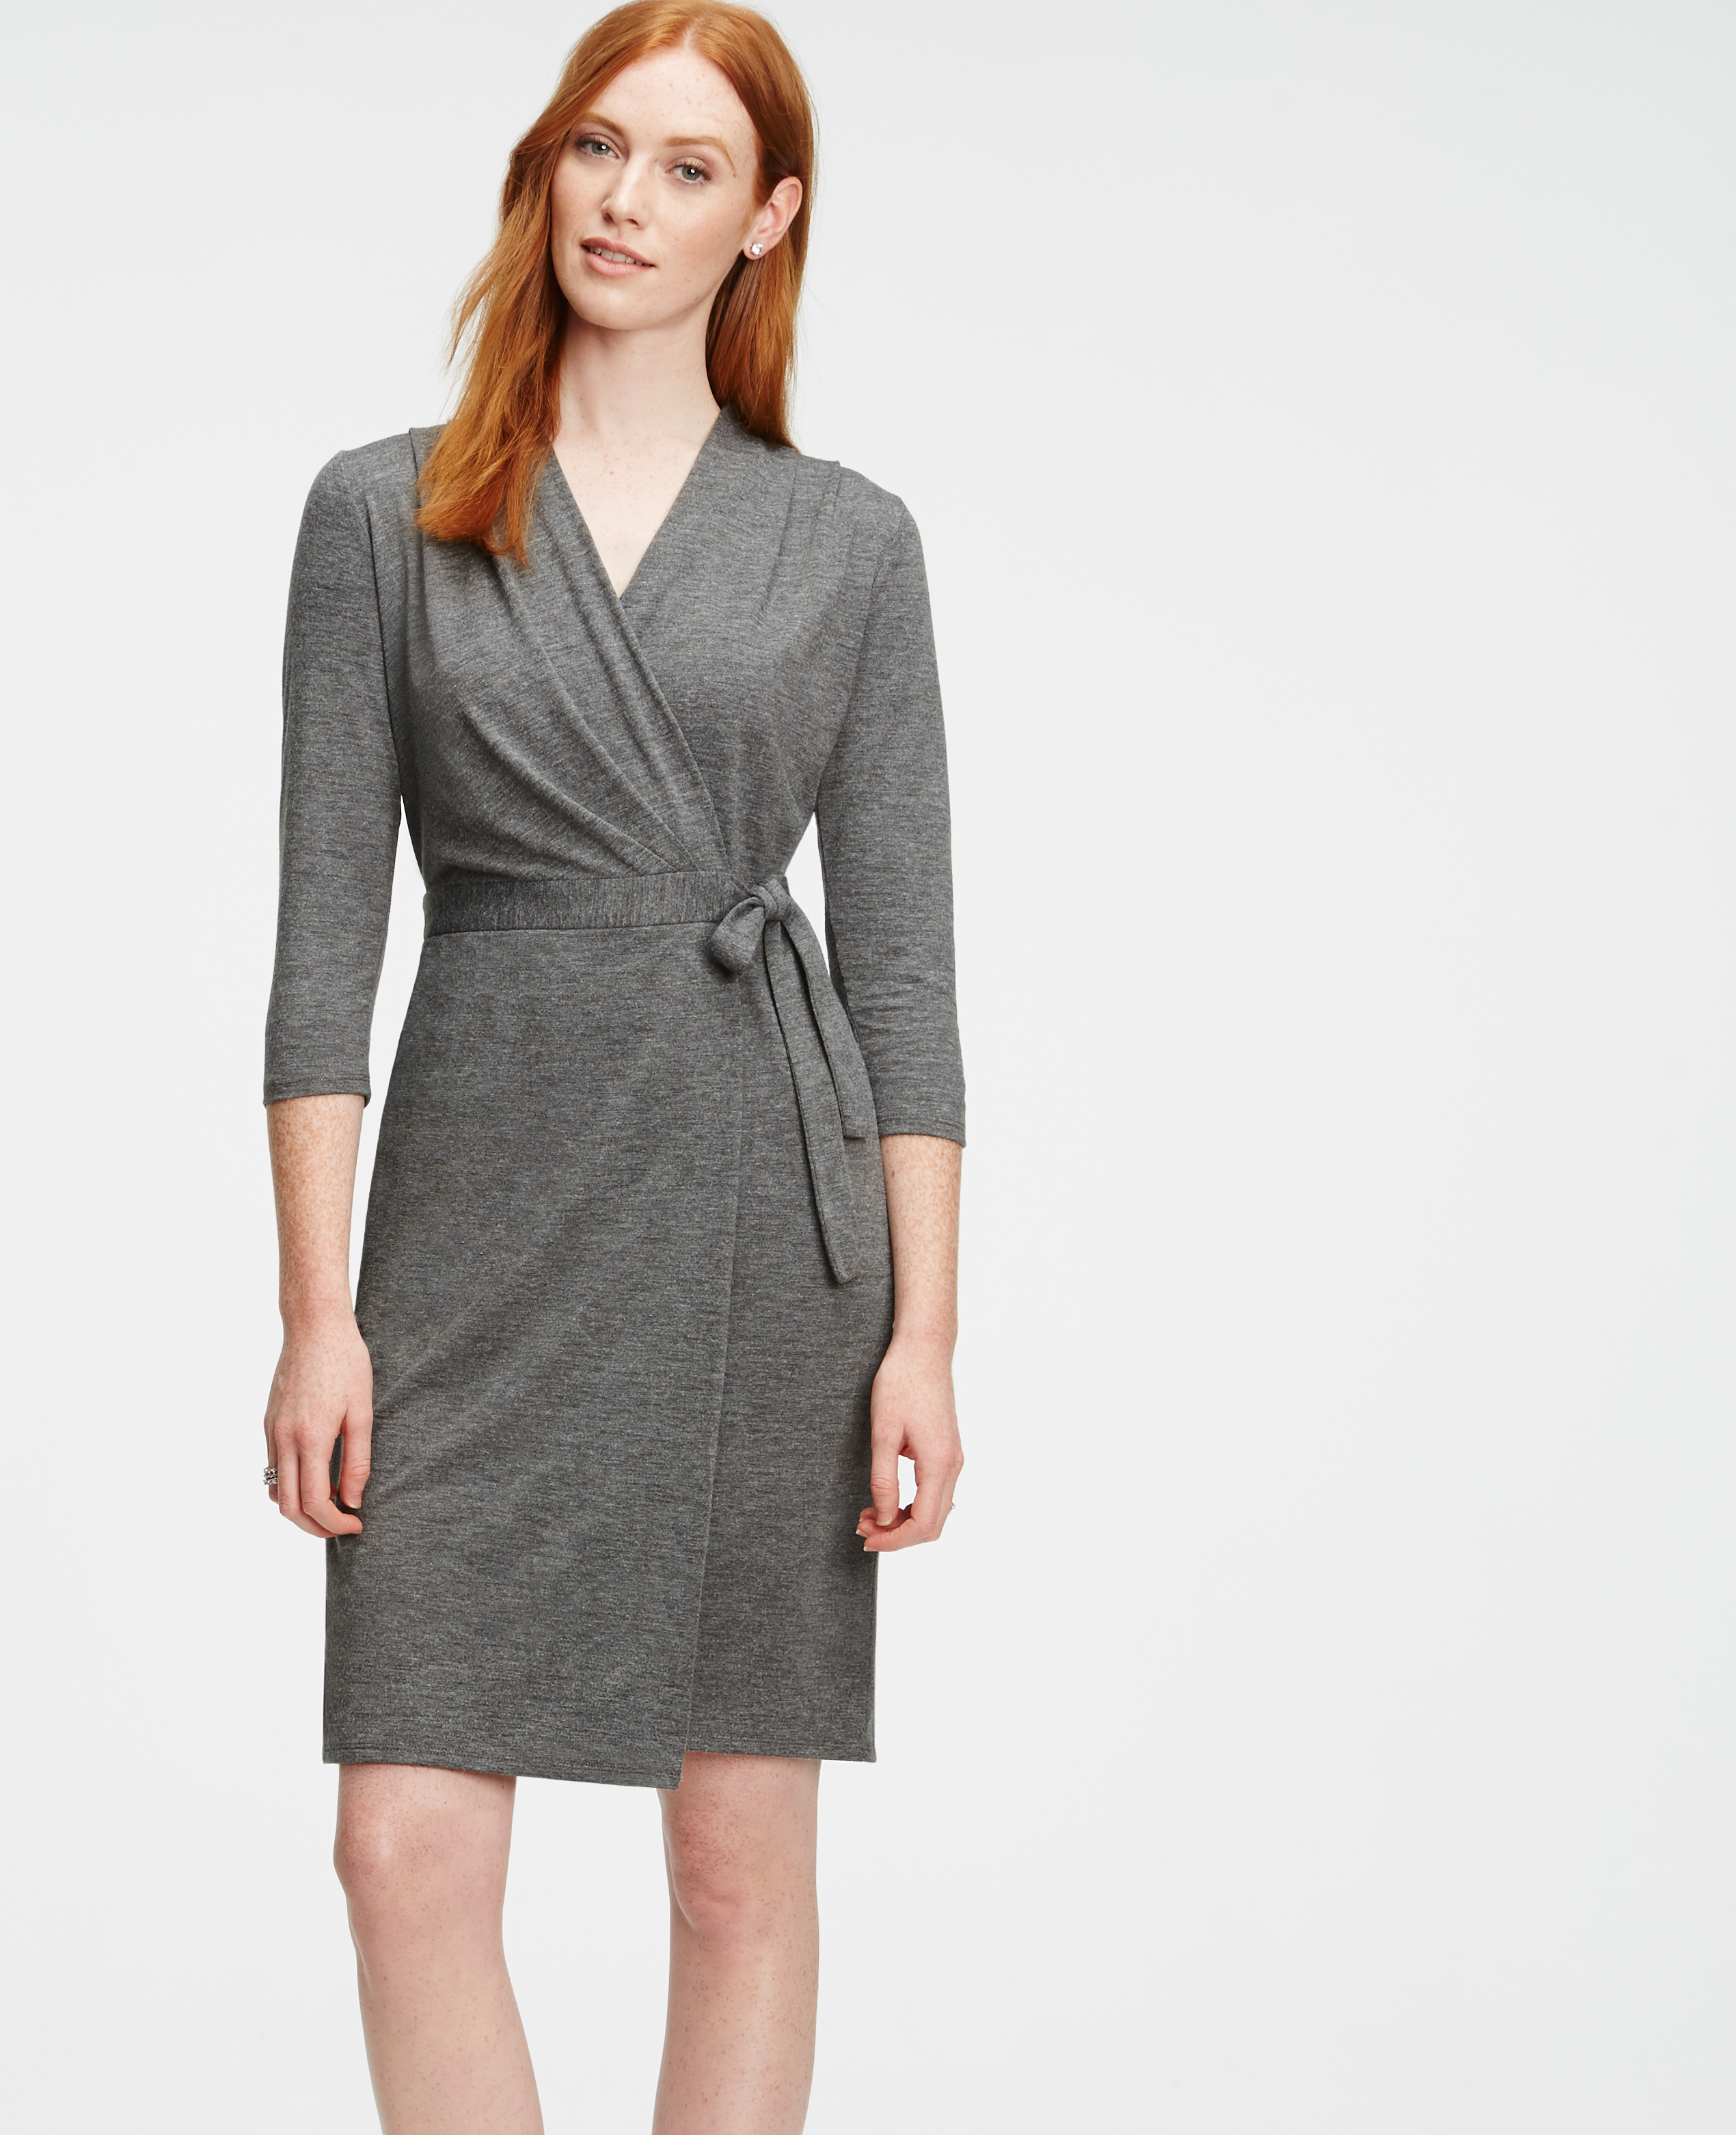 Ann taylor Petite Jersey Wrap Dress in Metallic | Lyst